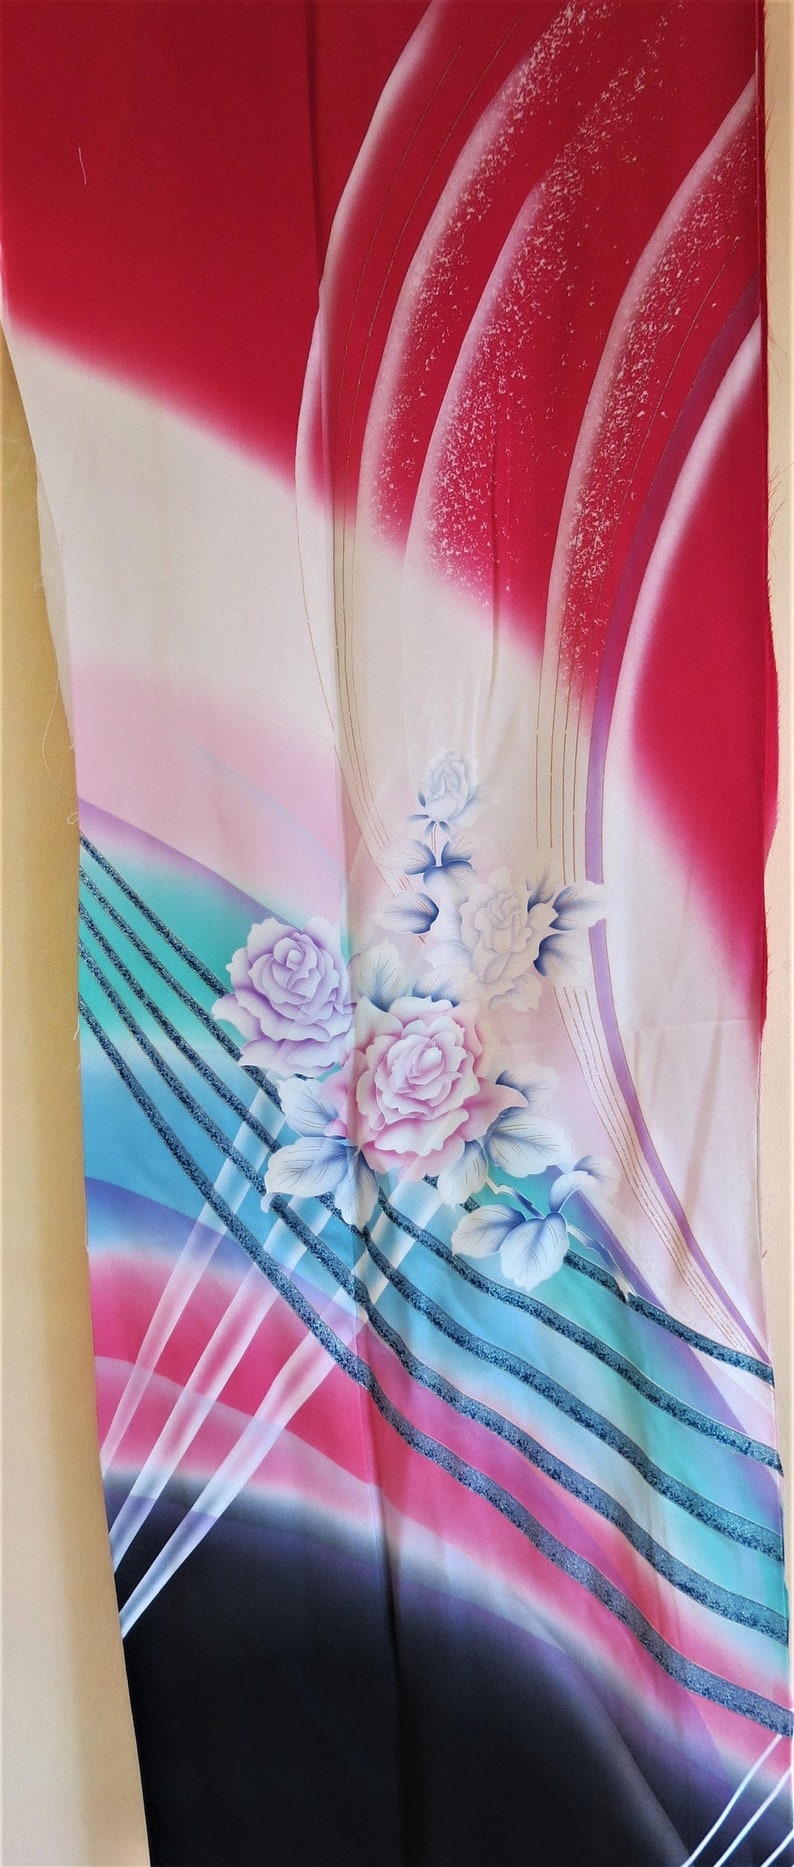 FABRIC Japanese Silk Fabric from a Vintage Furisode Kimono Rose Pink Blue Urushi Sparkle Rainbow Kimono Rose Crepe Silk Fabric 24 W X 67L